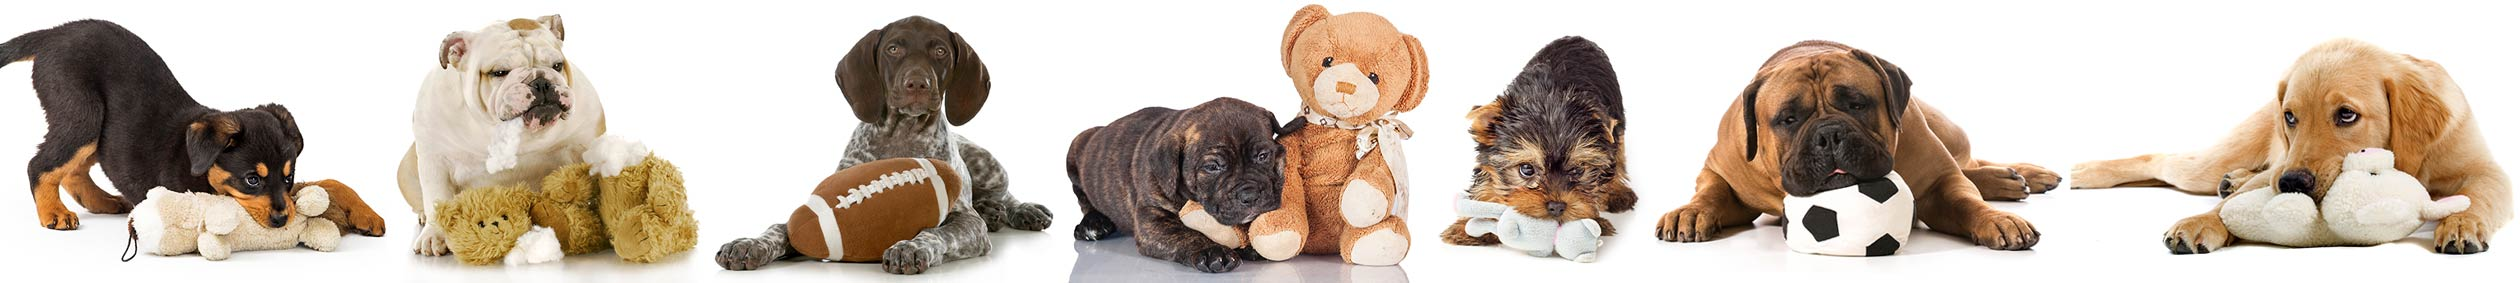 Cute dogs and puppies plying with plush toys